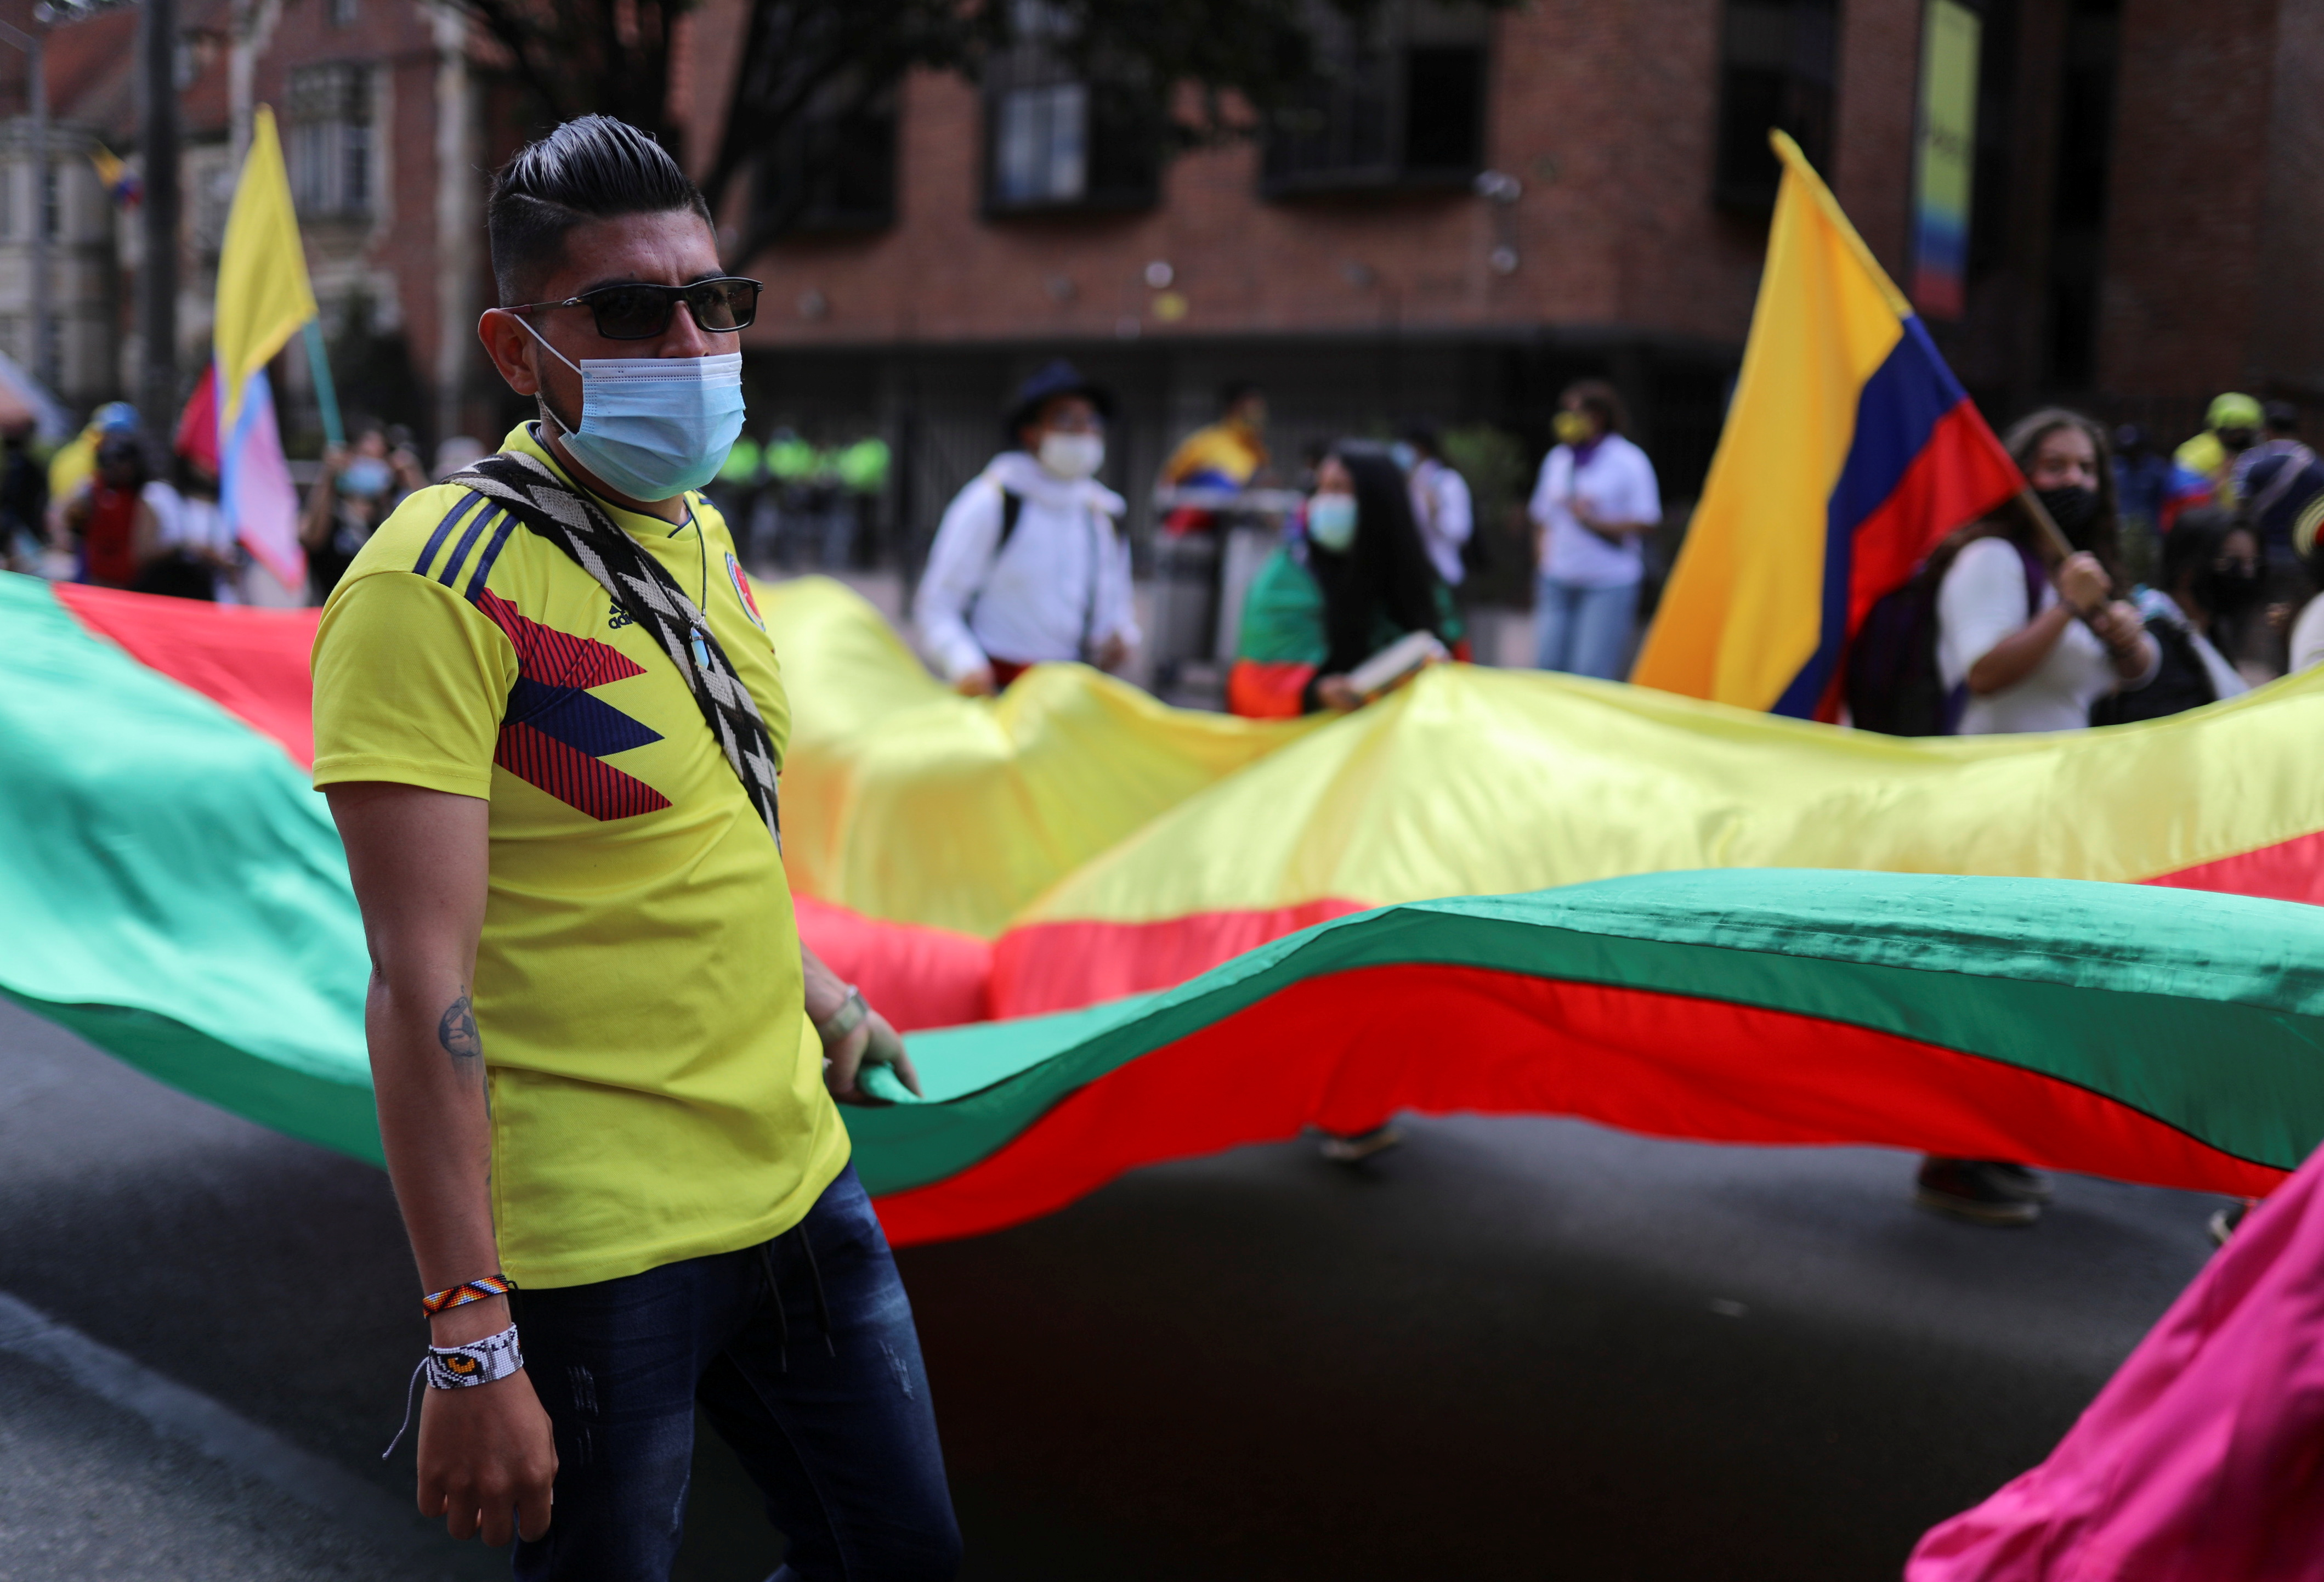 Demonstrators take part in a protest demanding government action to tackle poverty, police violence and inequalities in healthcare and education systems, in Bogota, Colombia, May 19, 2021. REUTERS/Luisa Gonzalez